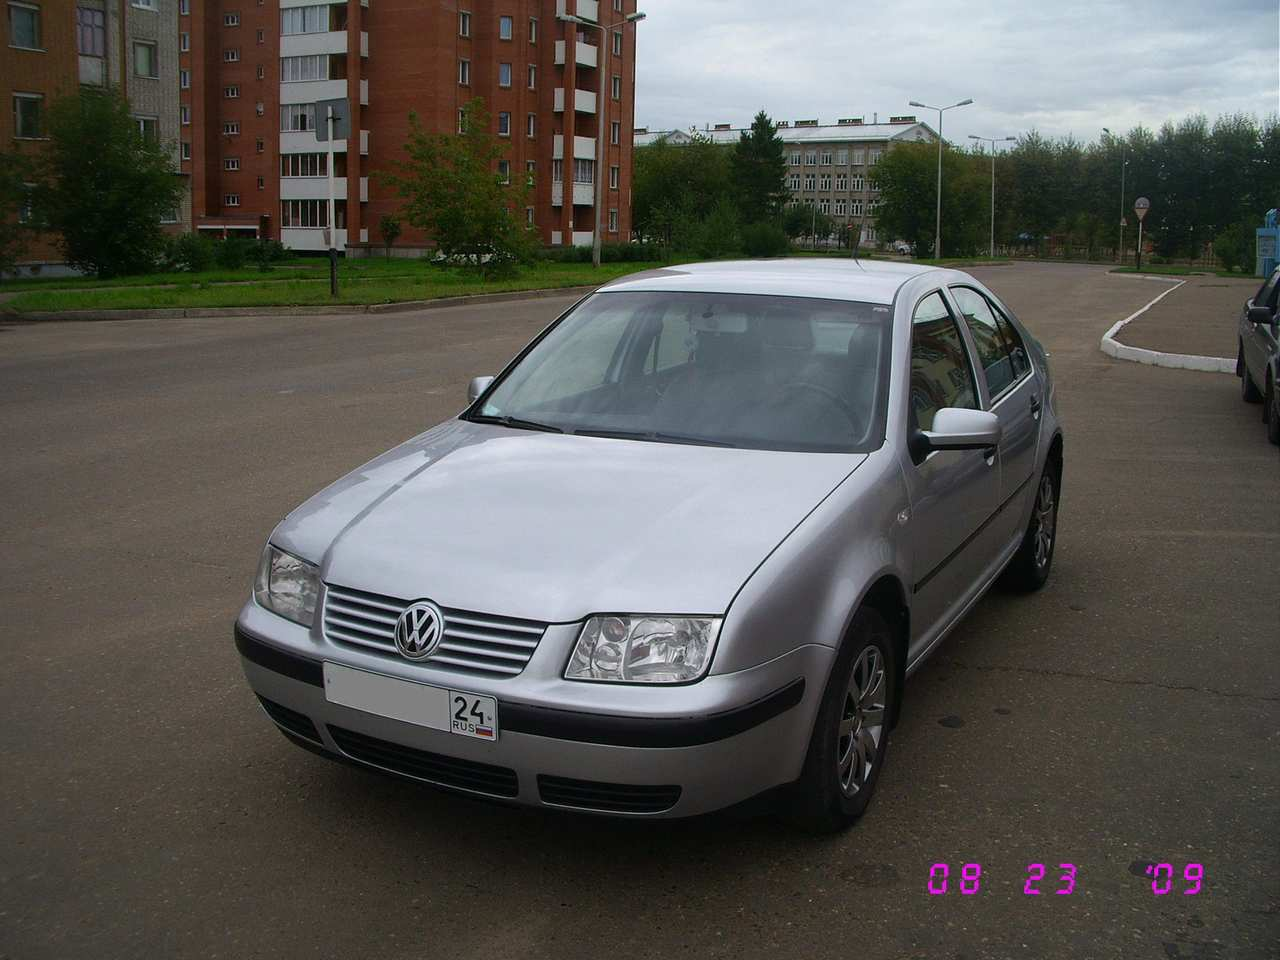 Used 2002 Volkswagen BORA Photos, 1600cc., Gasoline, FF, Automatic For Sale